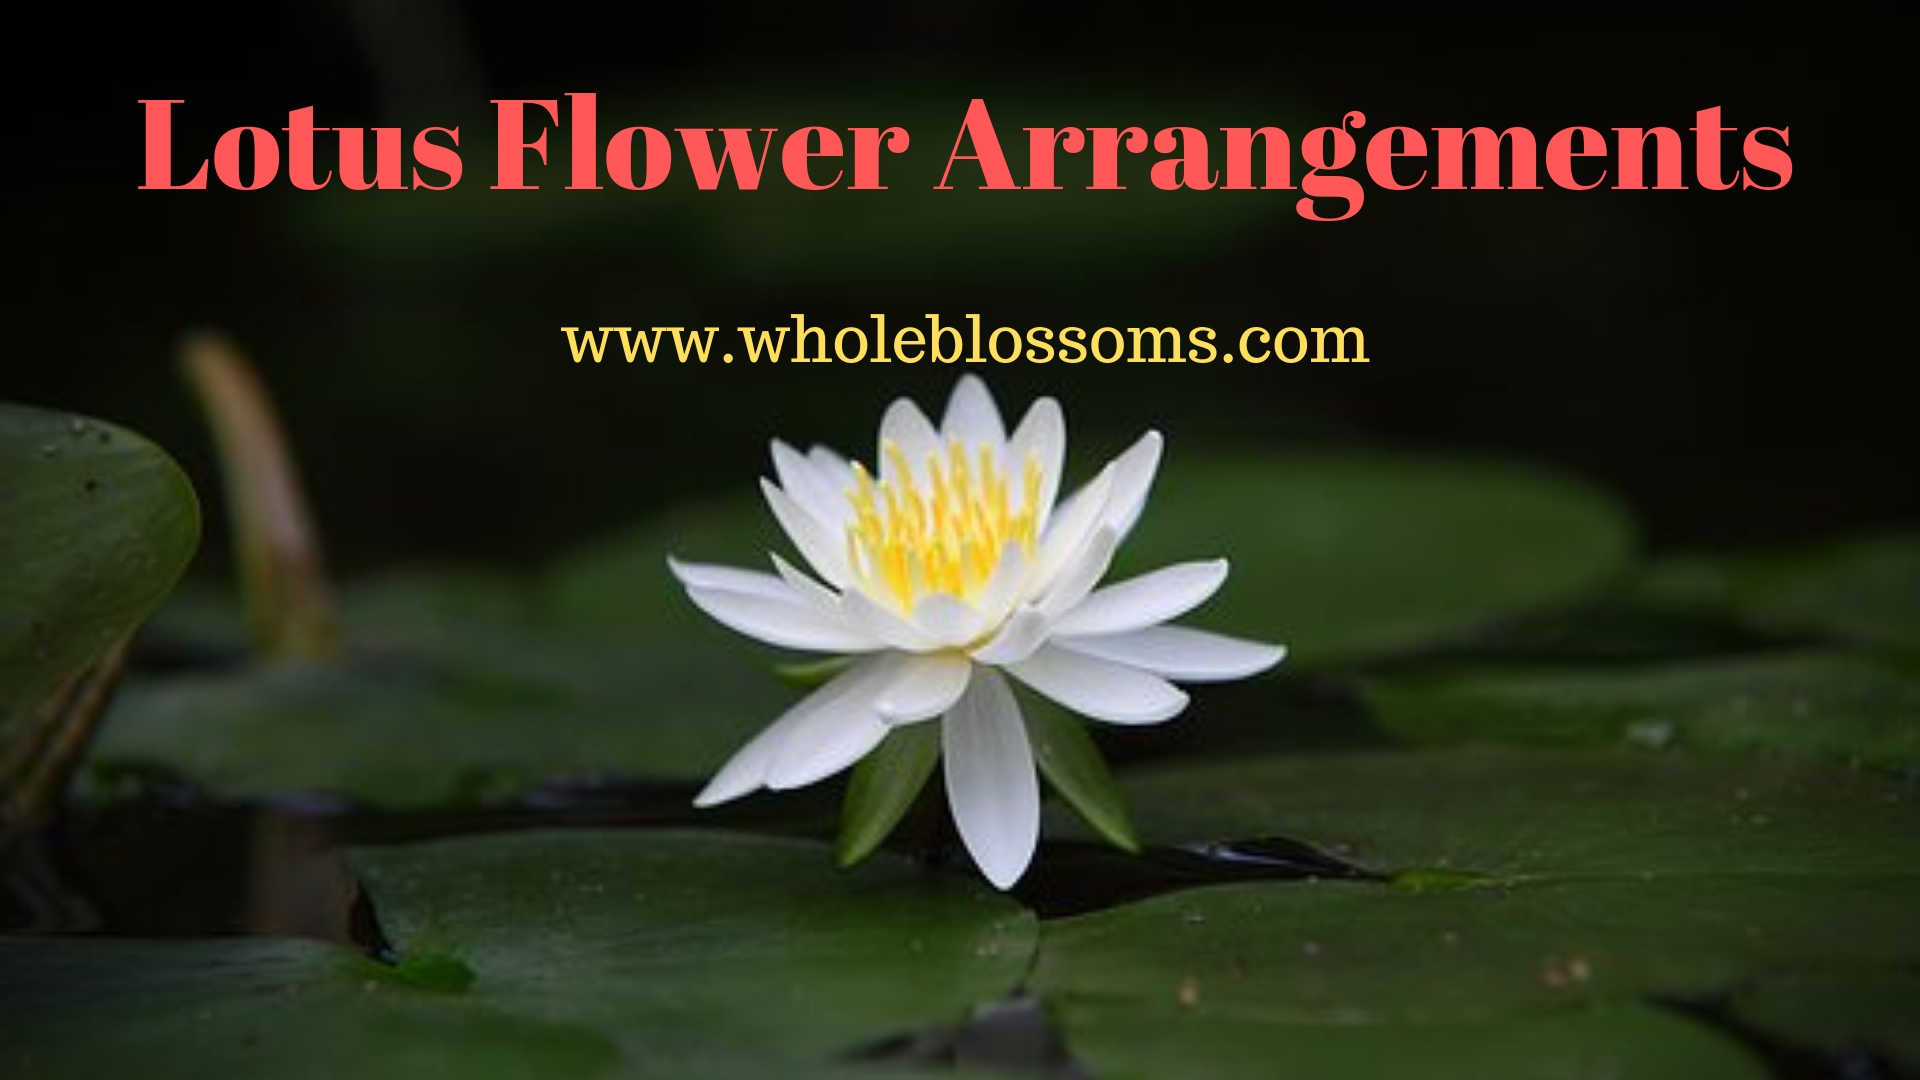 Purchase Gorgeous & Fresh Lotus Flowers for Sale